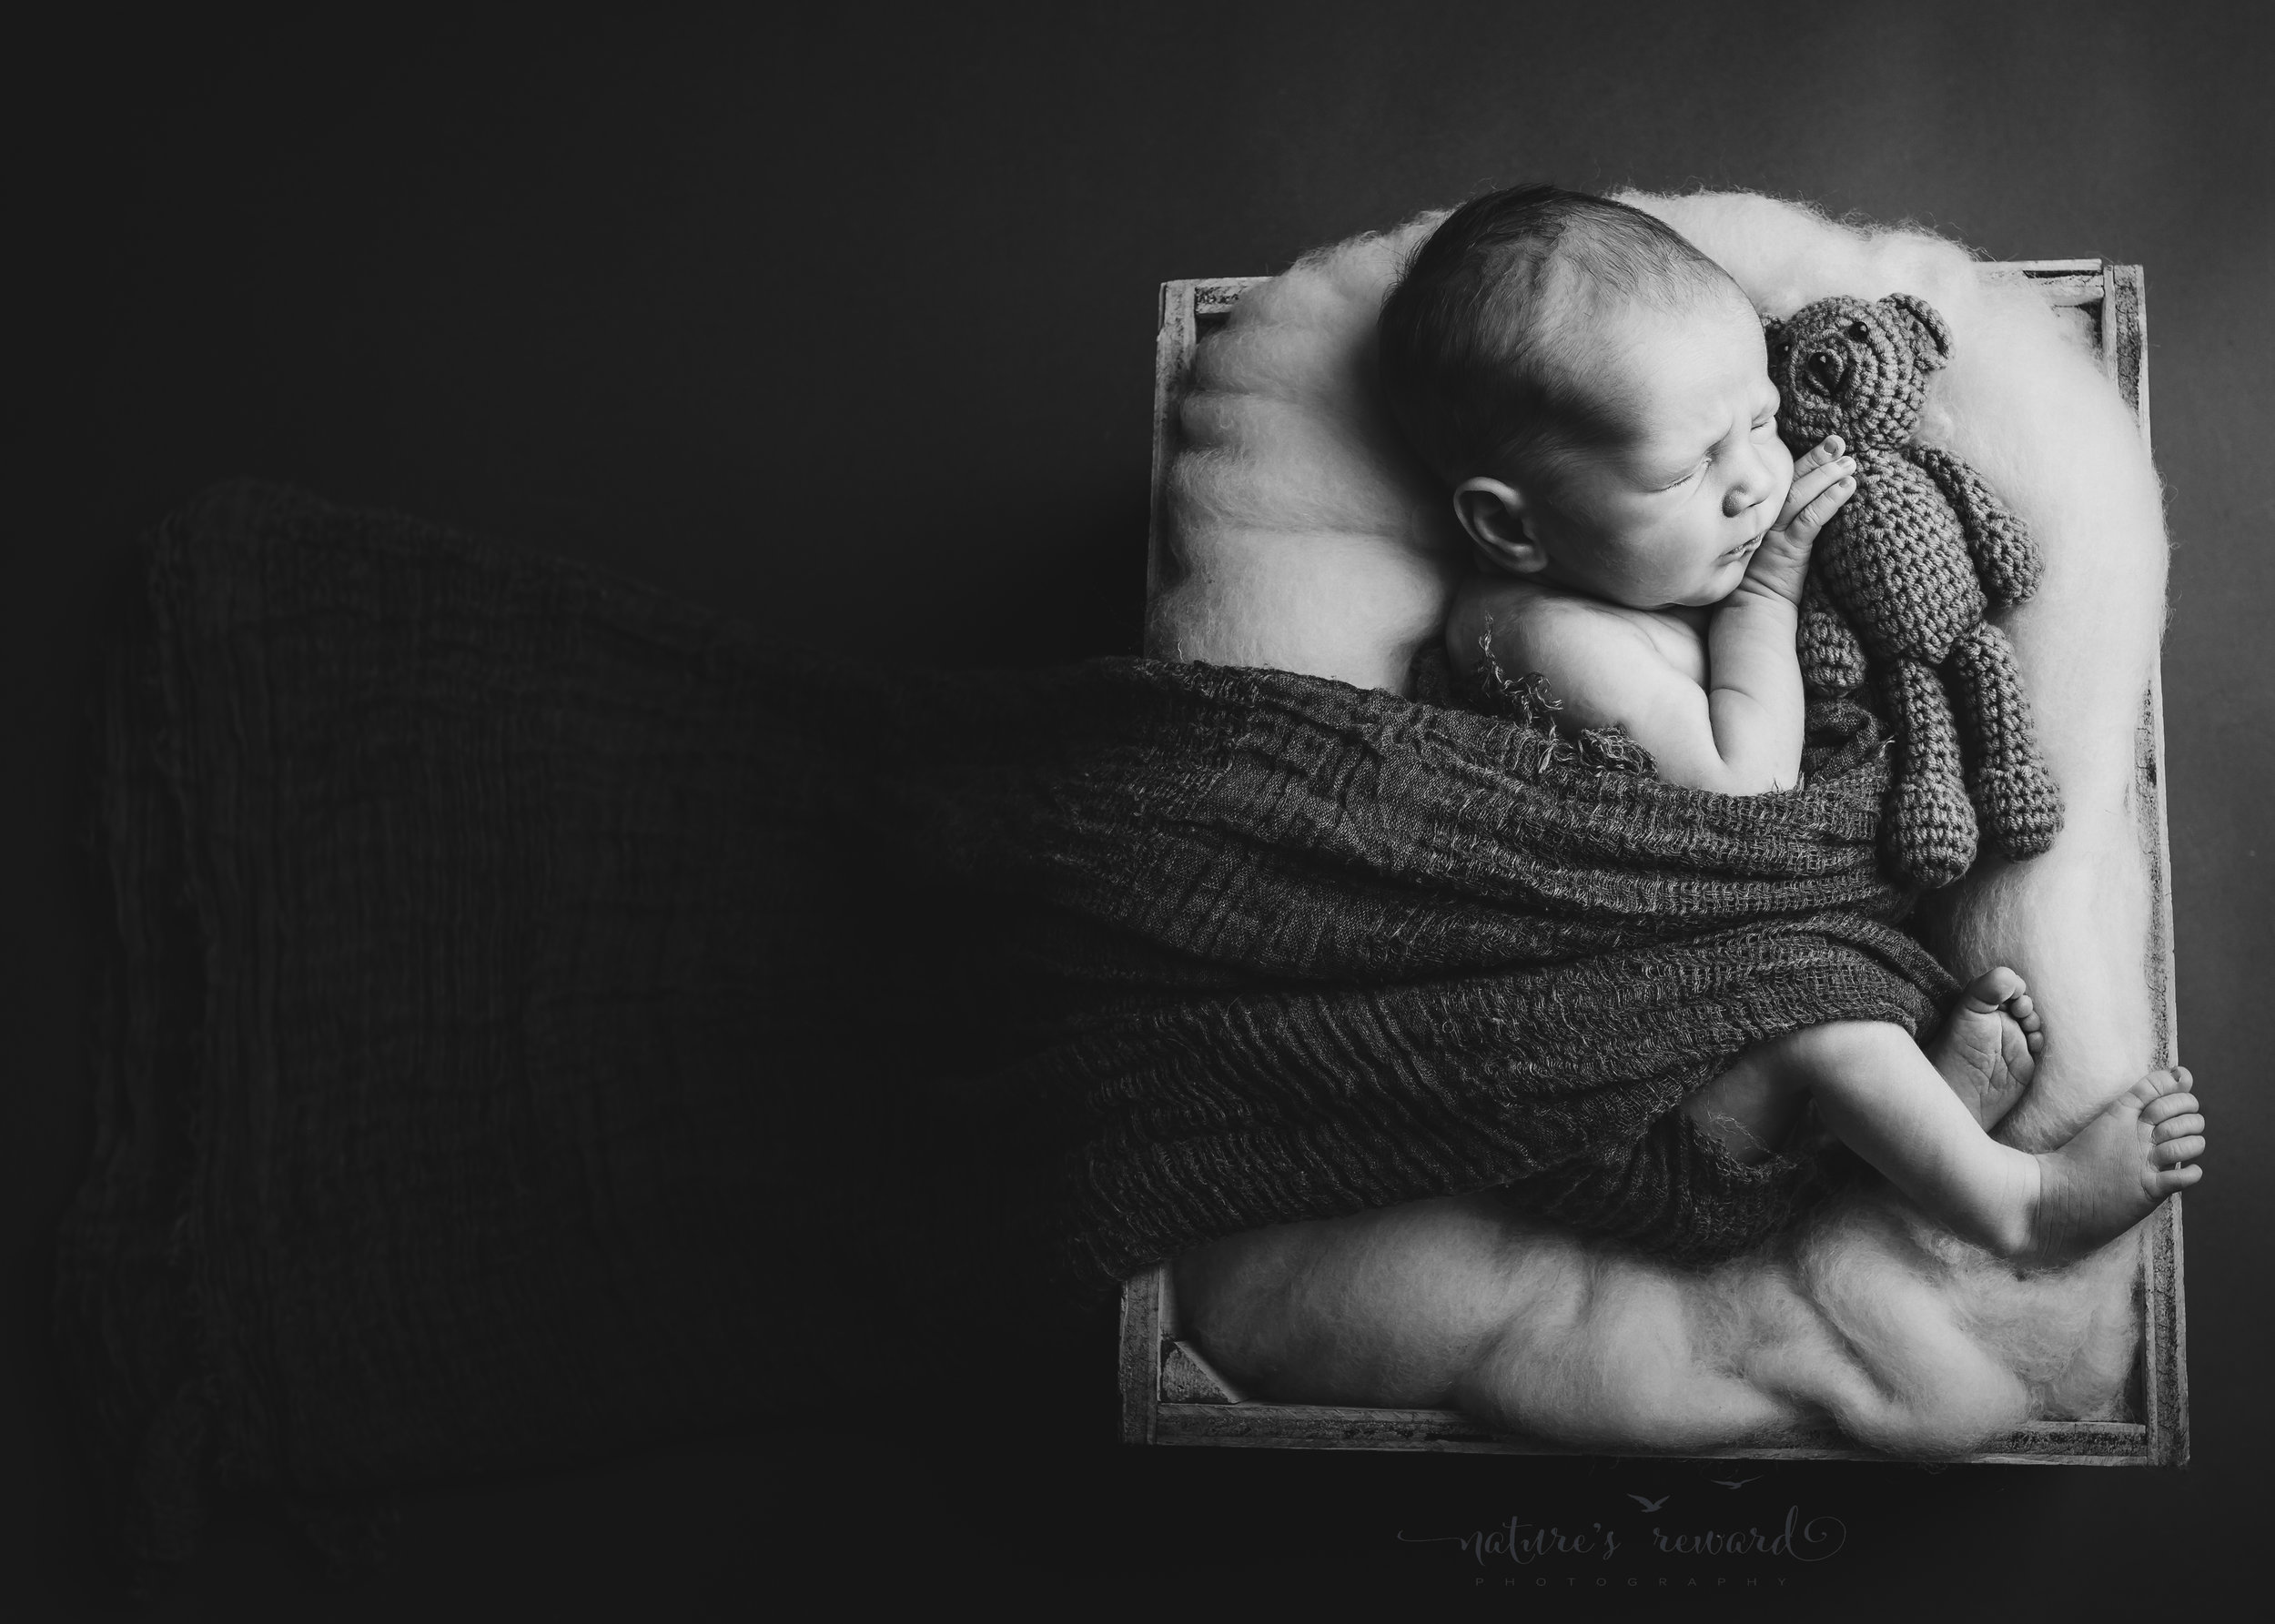 This stunning black and white image with a remarkable use of negative space and lovely lighting on this sweet newborn baby boy's face while he cuddles a teddy and is wrapped while snuggled into a box full of white fluff- A newborn portrait by Nature's Reward Photography